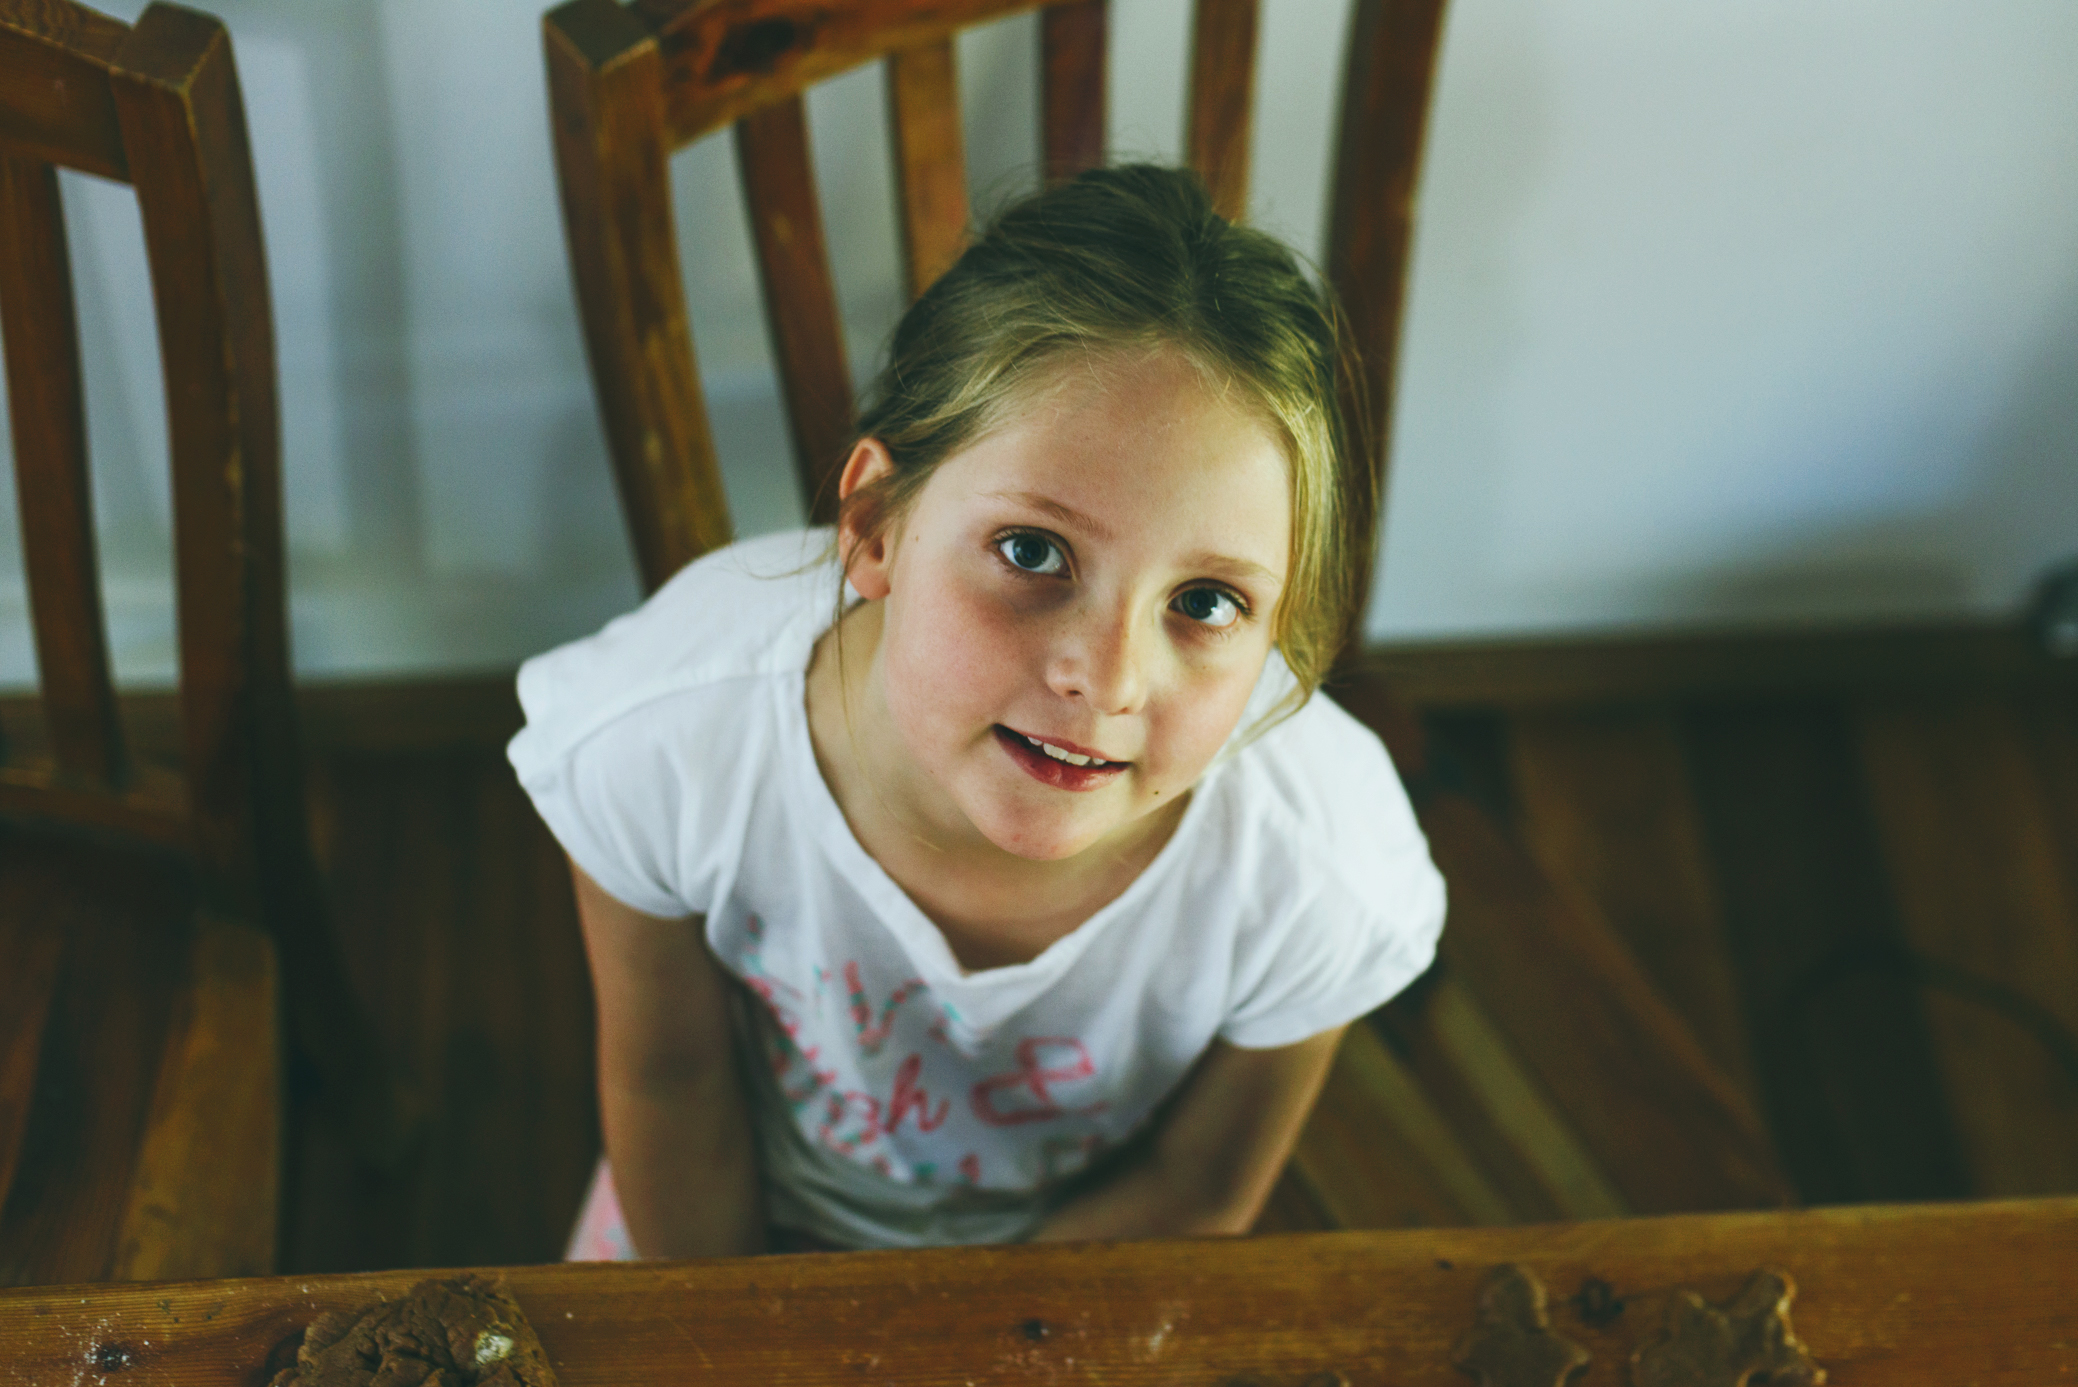 Sydney lifestyle photography by Cindy Cavanagh. Girl at the kitchen table